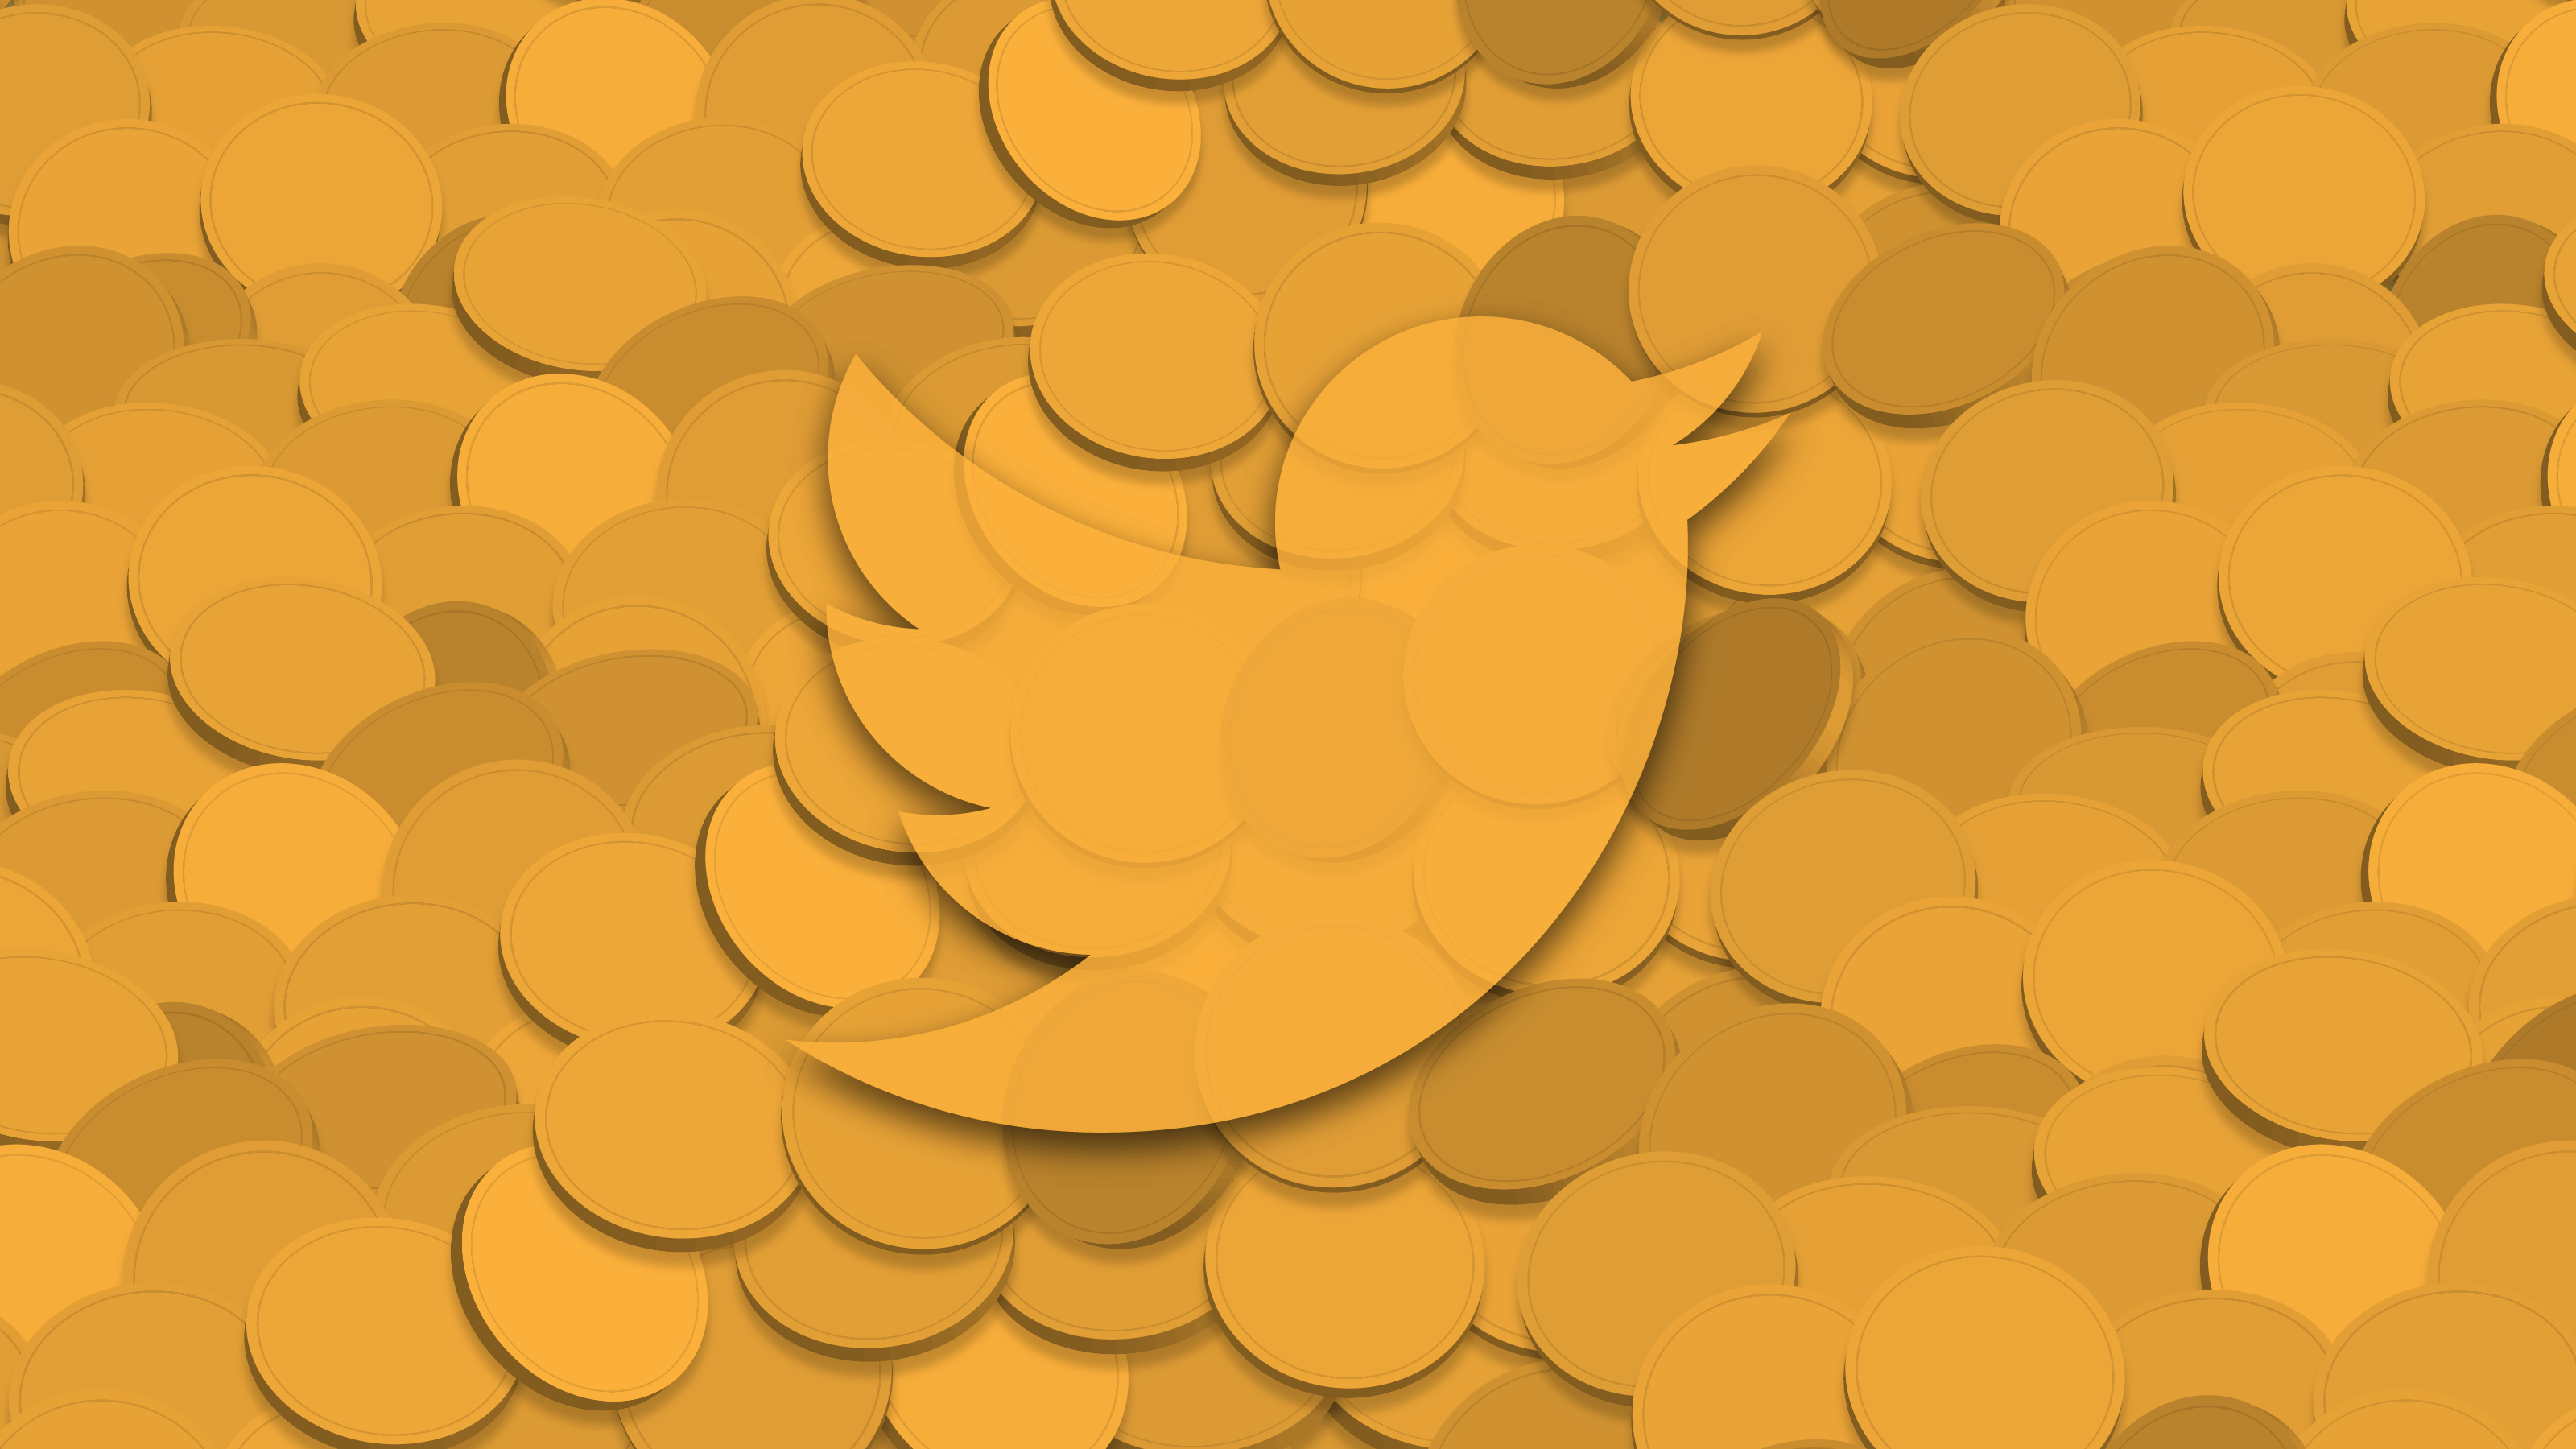 Twitter to ban cryptocurrency ads